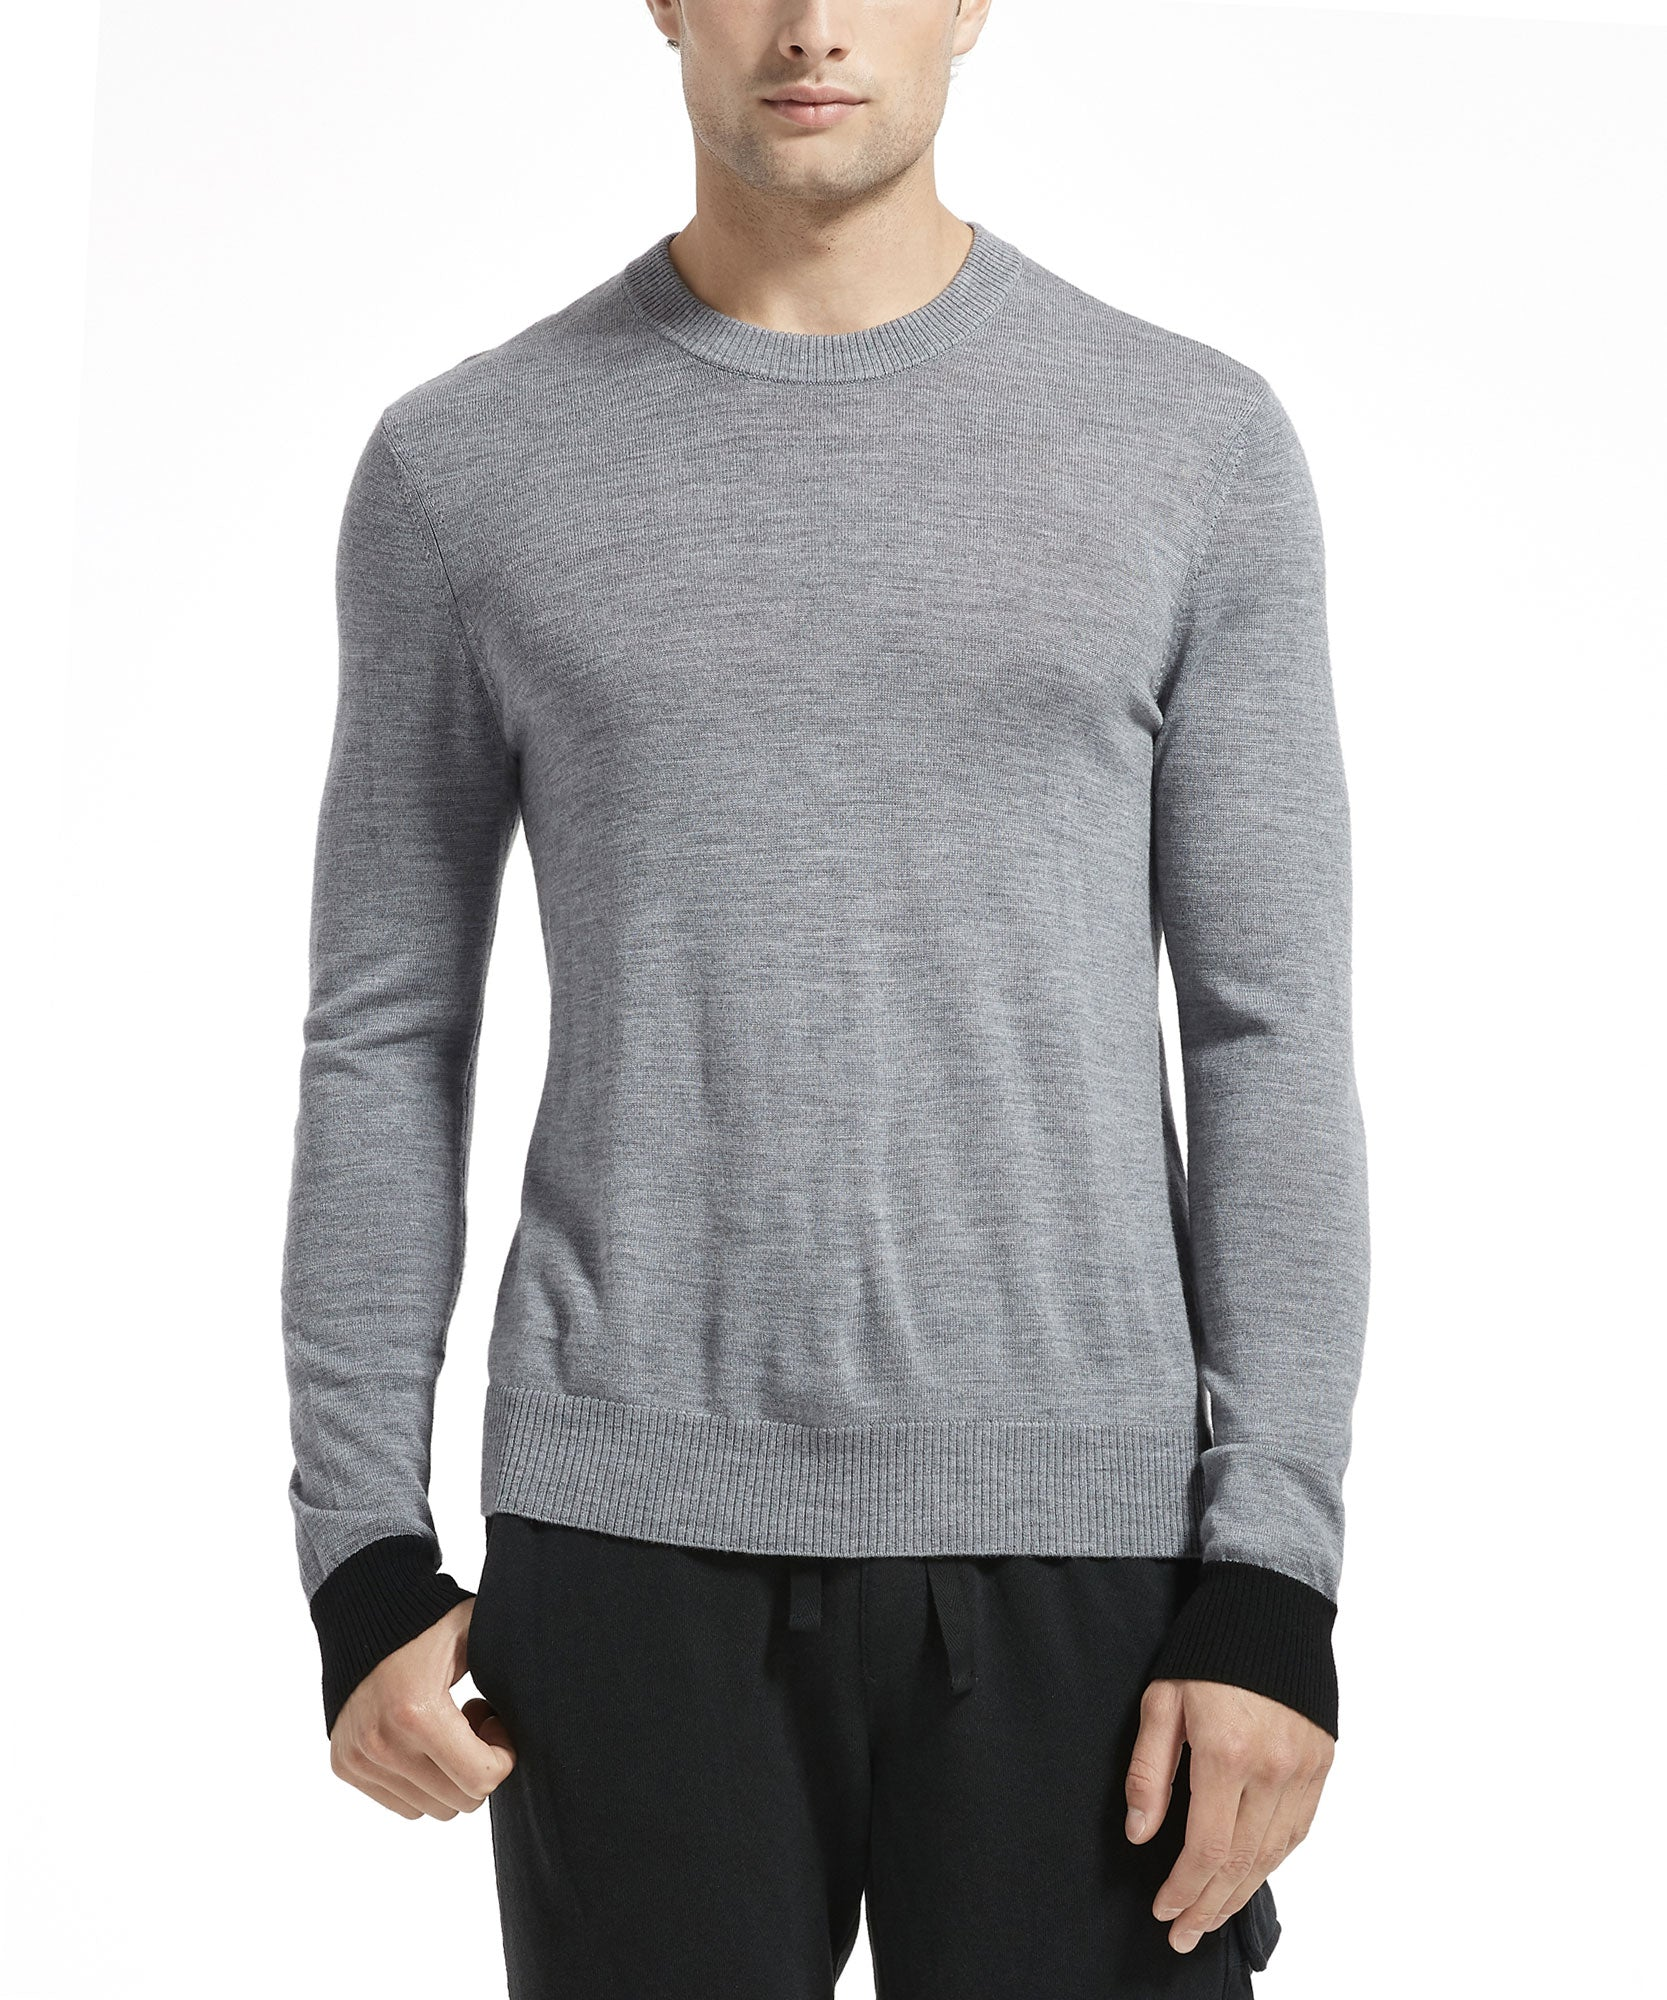 Heather Grey Merino Wool Contrast Cuff Crew Neck Sweater - Men's Luxury Sweater by ATM Anthony Thomas Melillo